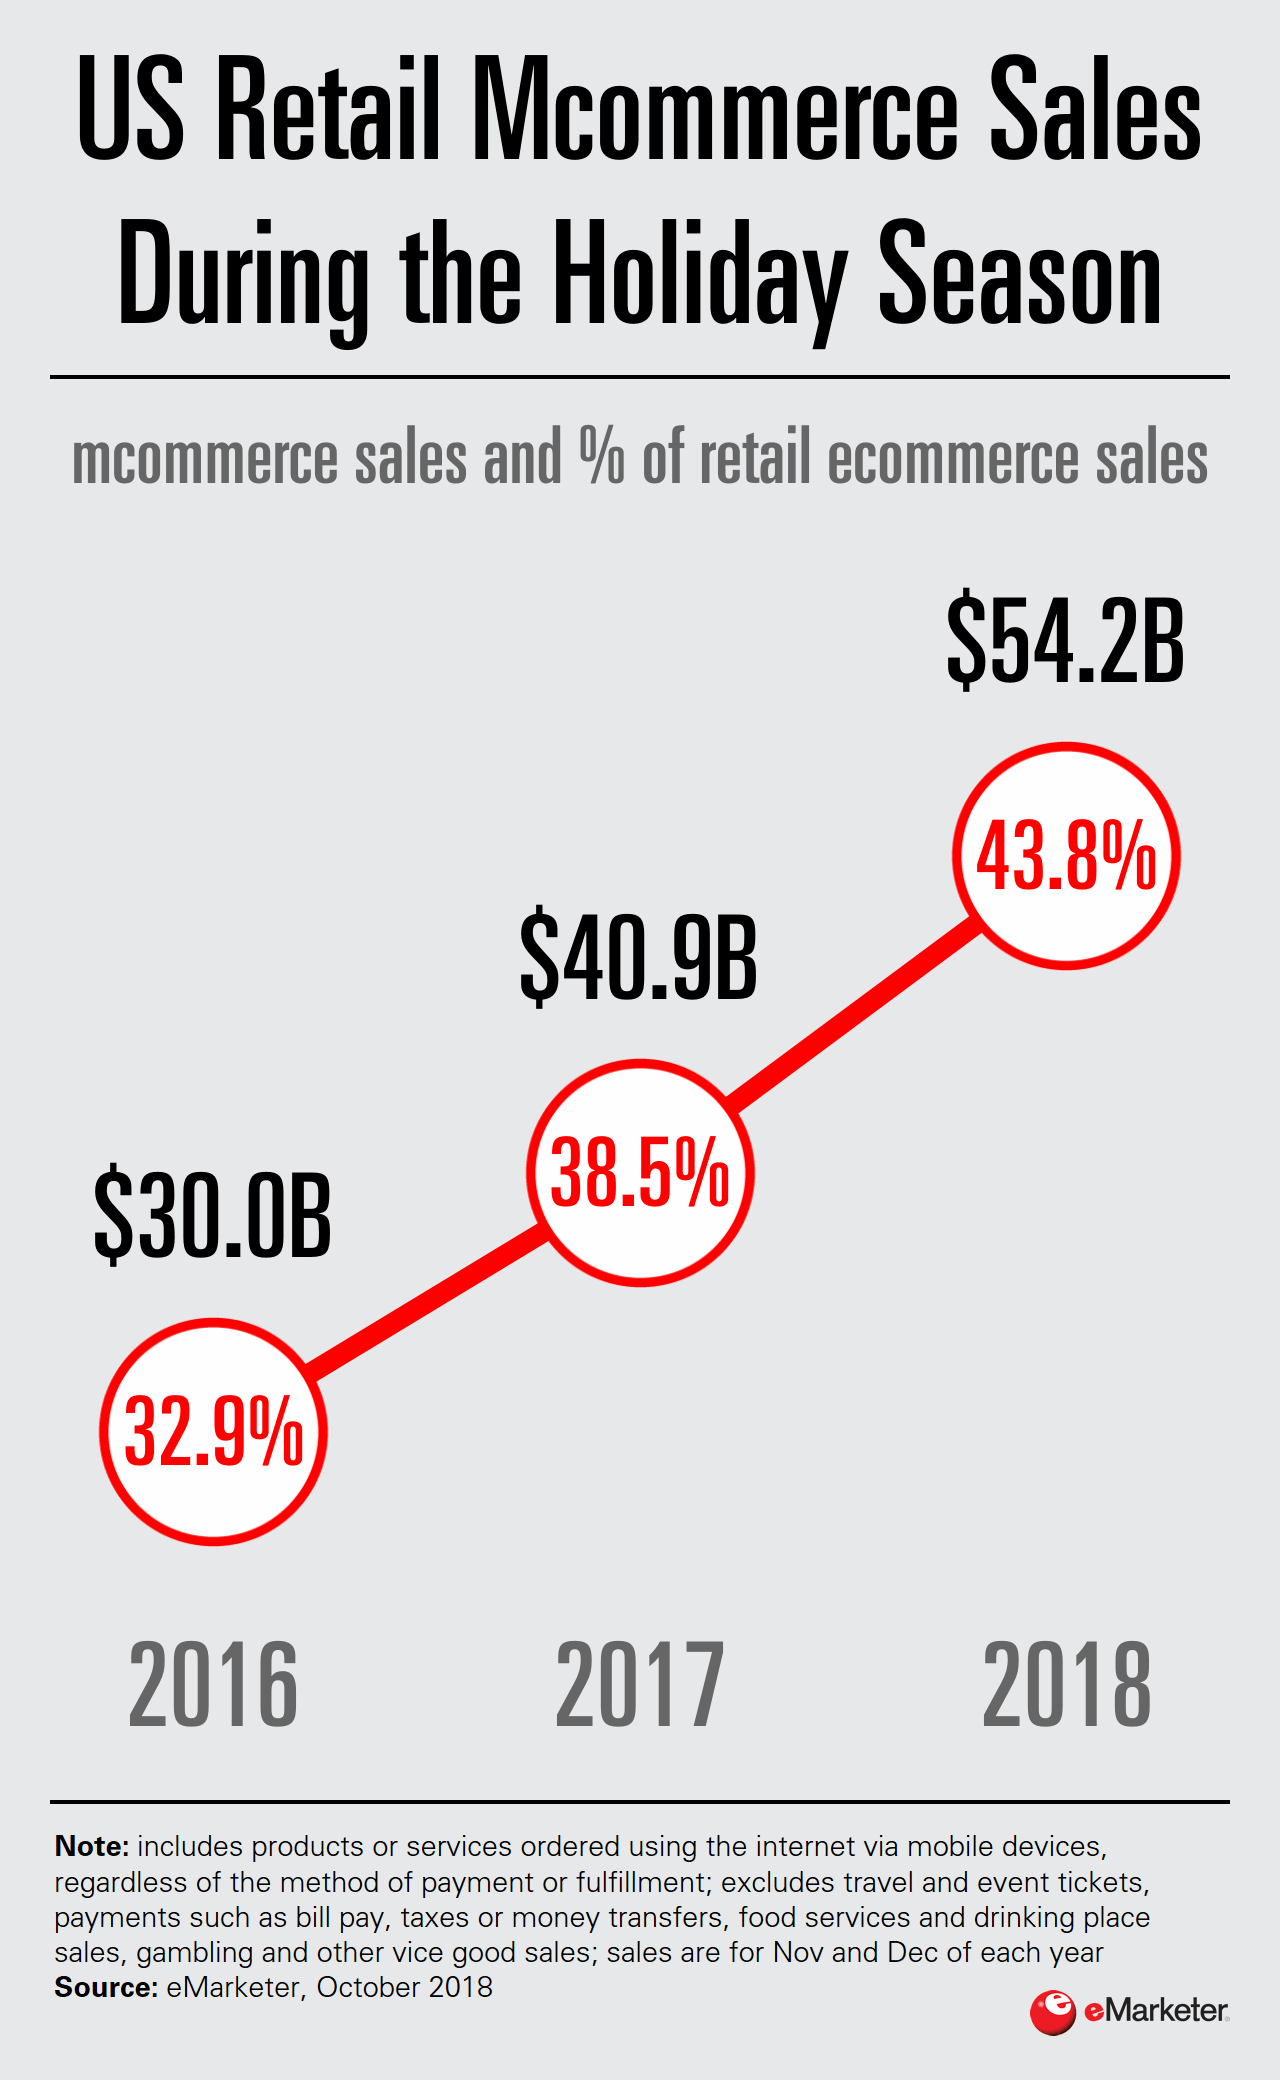 US retail Mcommerce Sales During the Holiday Season